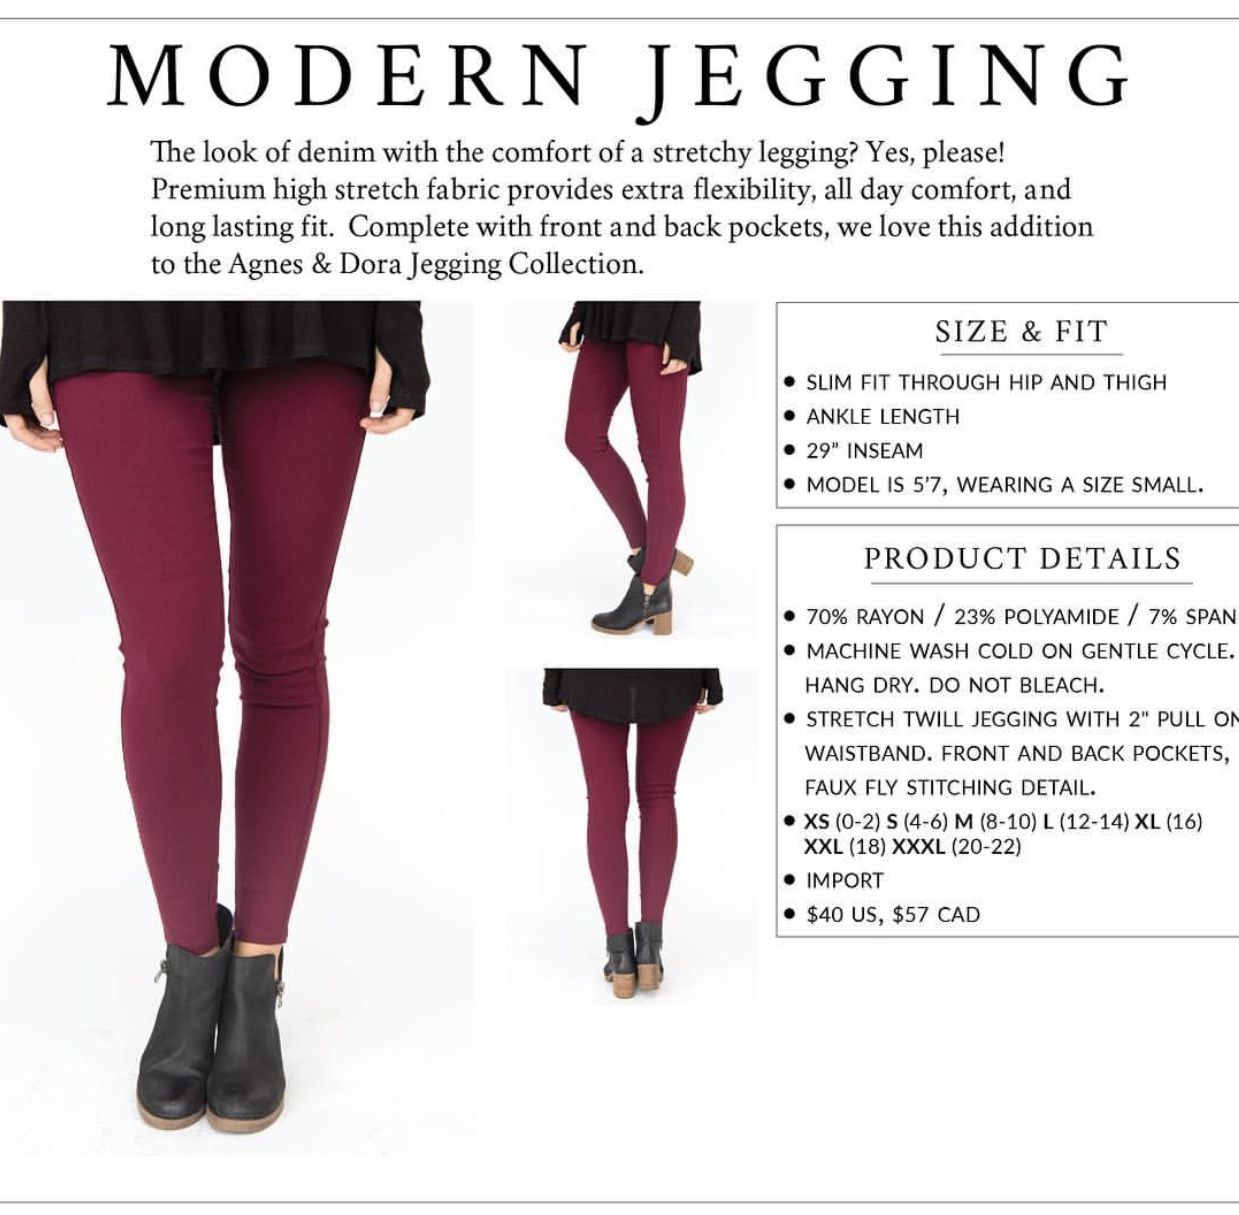 b09a211495e62 Agnes and Dora Modern Jeggings...yes please!! www.barnlifeboutique.com.  Find this Pin and more on ...